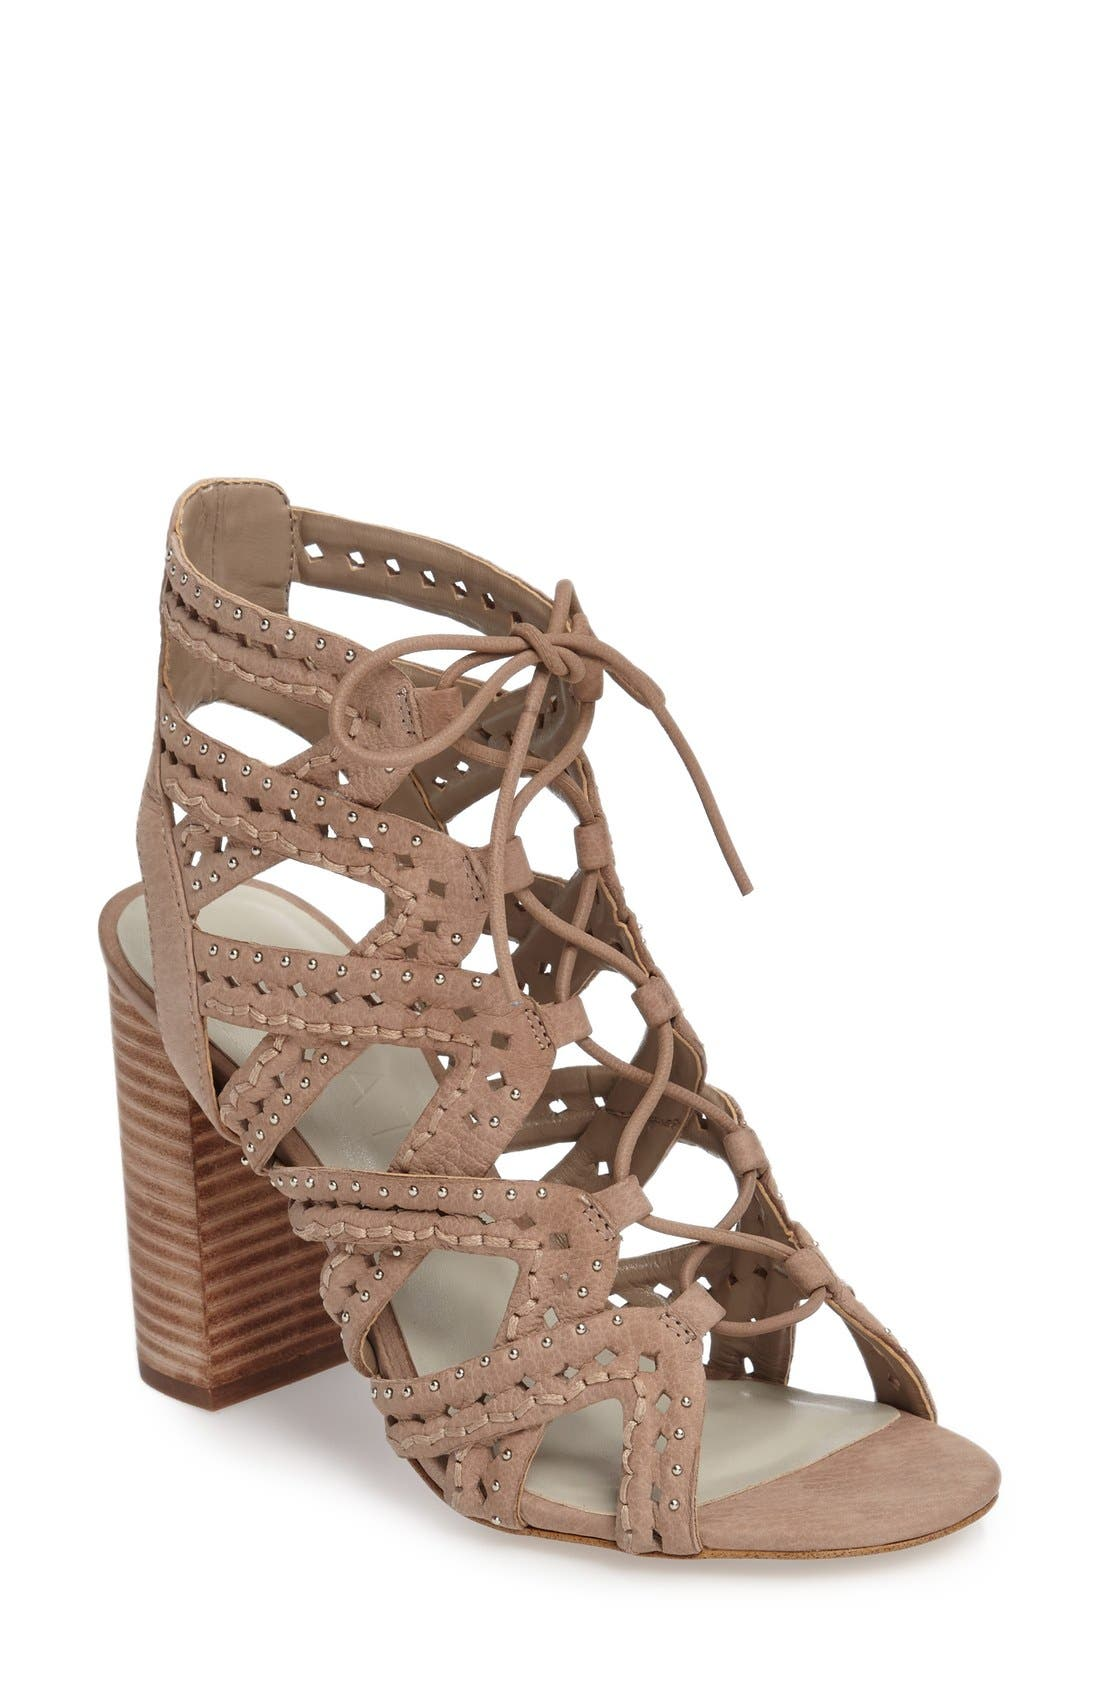 Kayley Sandal,                         Main,                         color, Stone Nubuck Leather